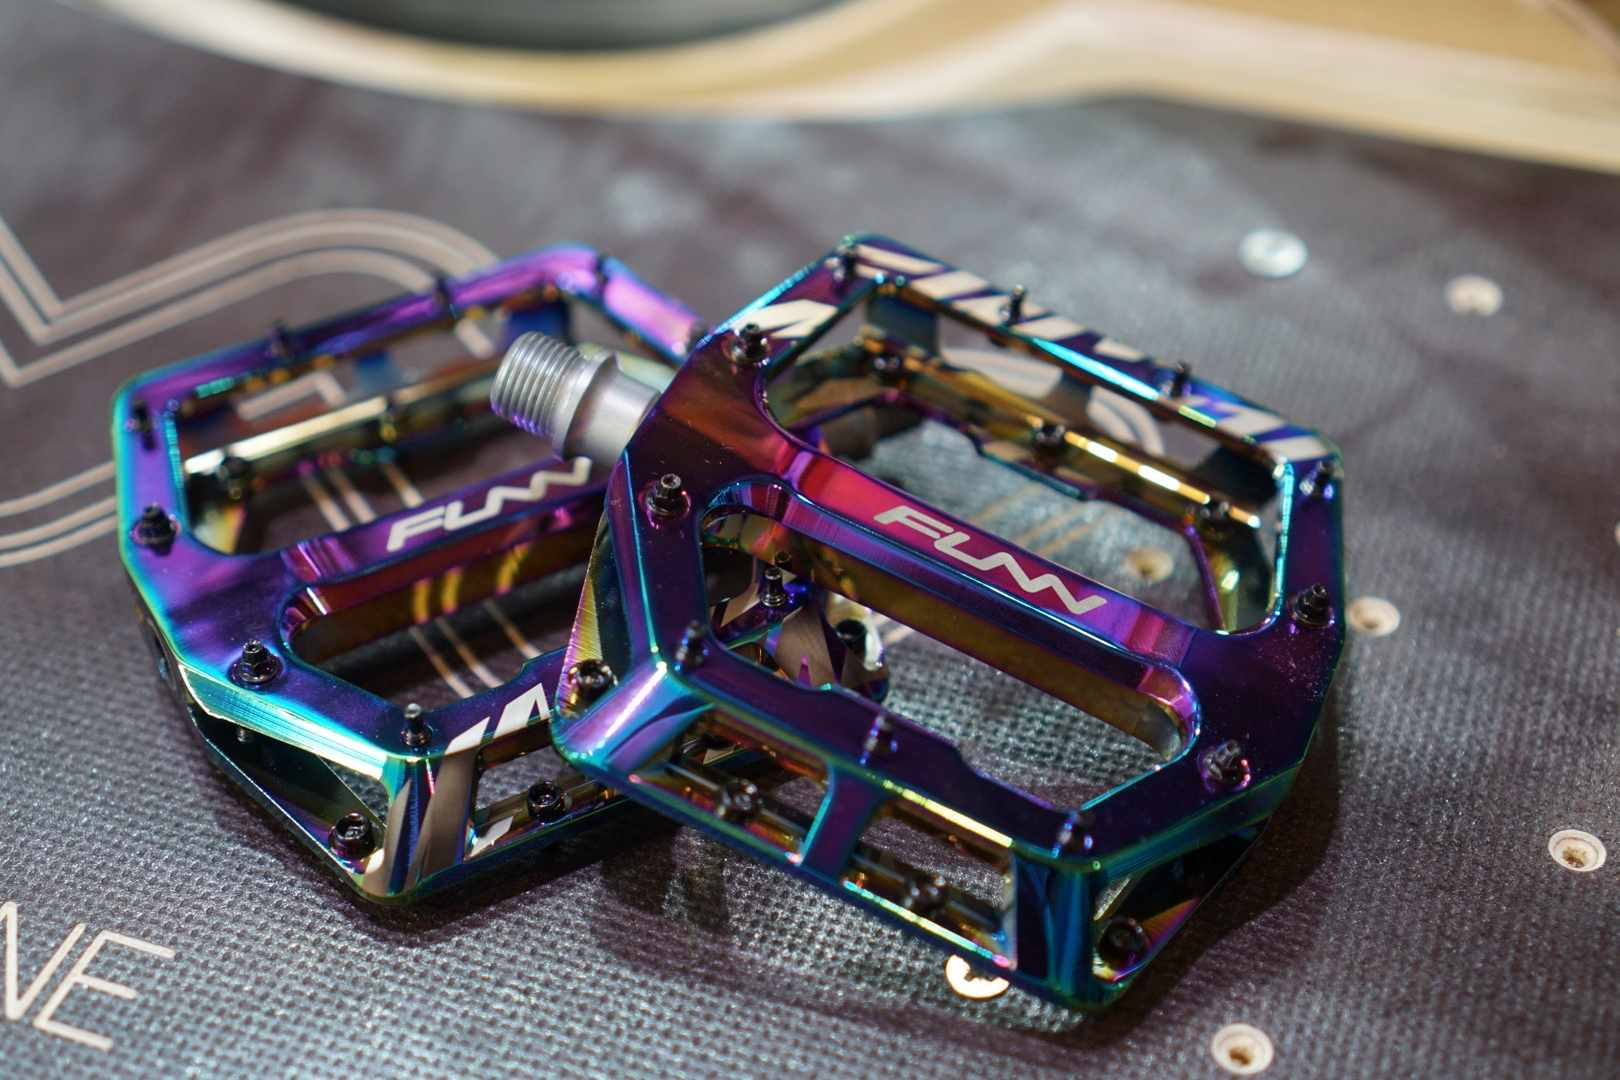 Funn oil slick pedals